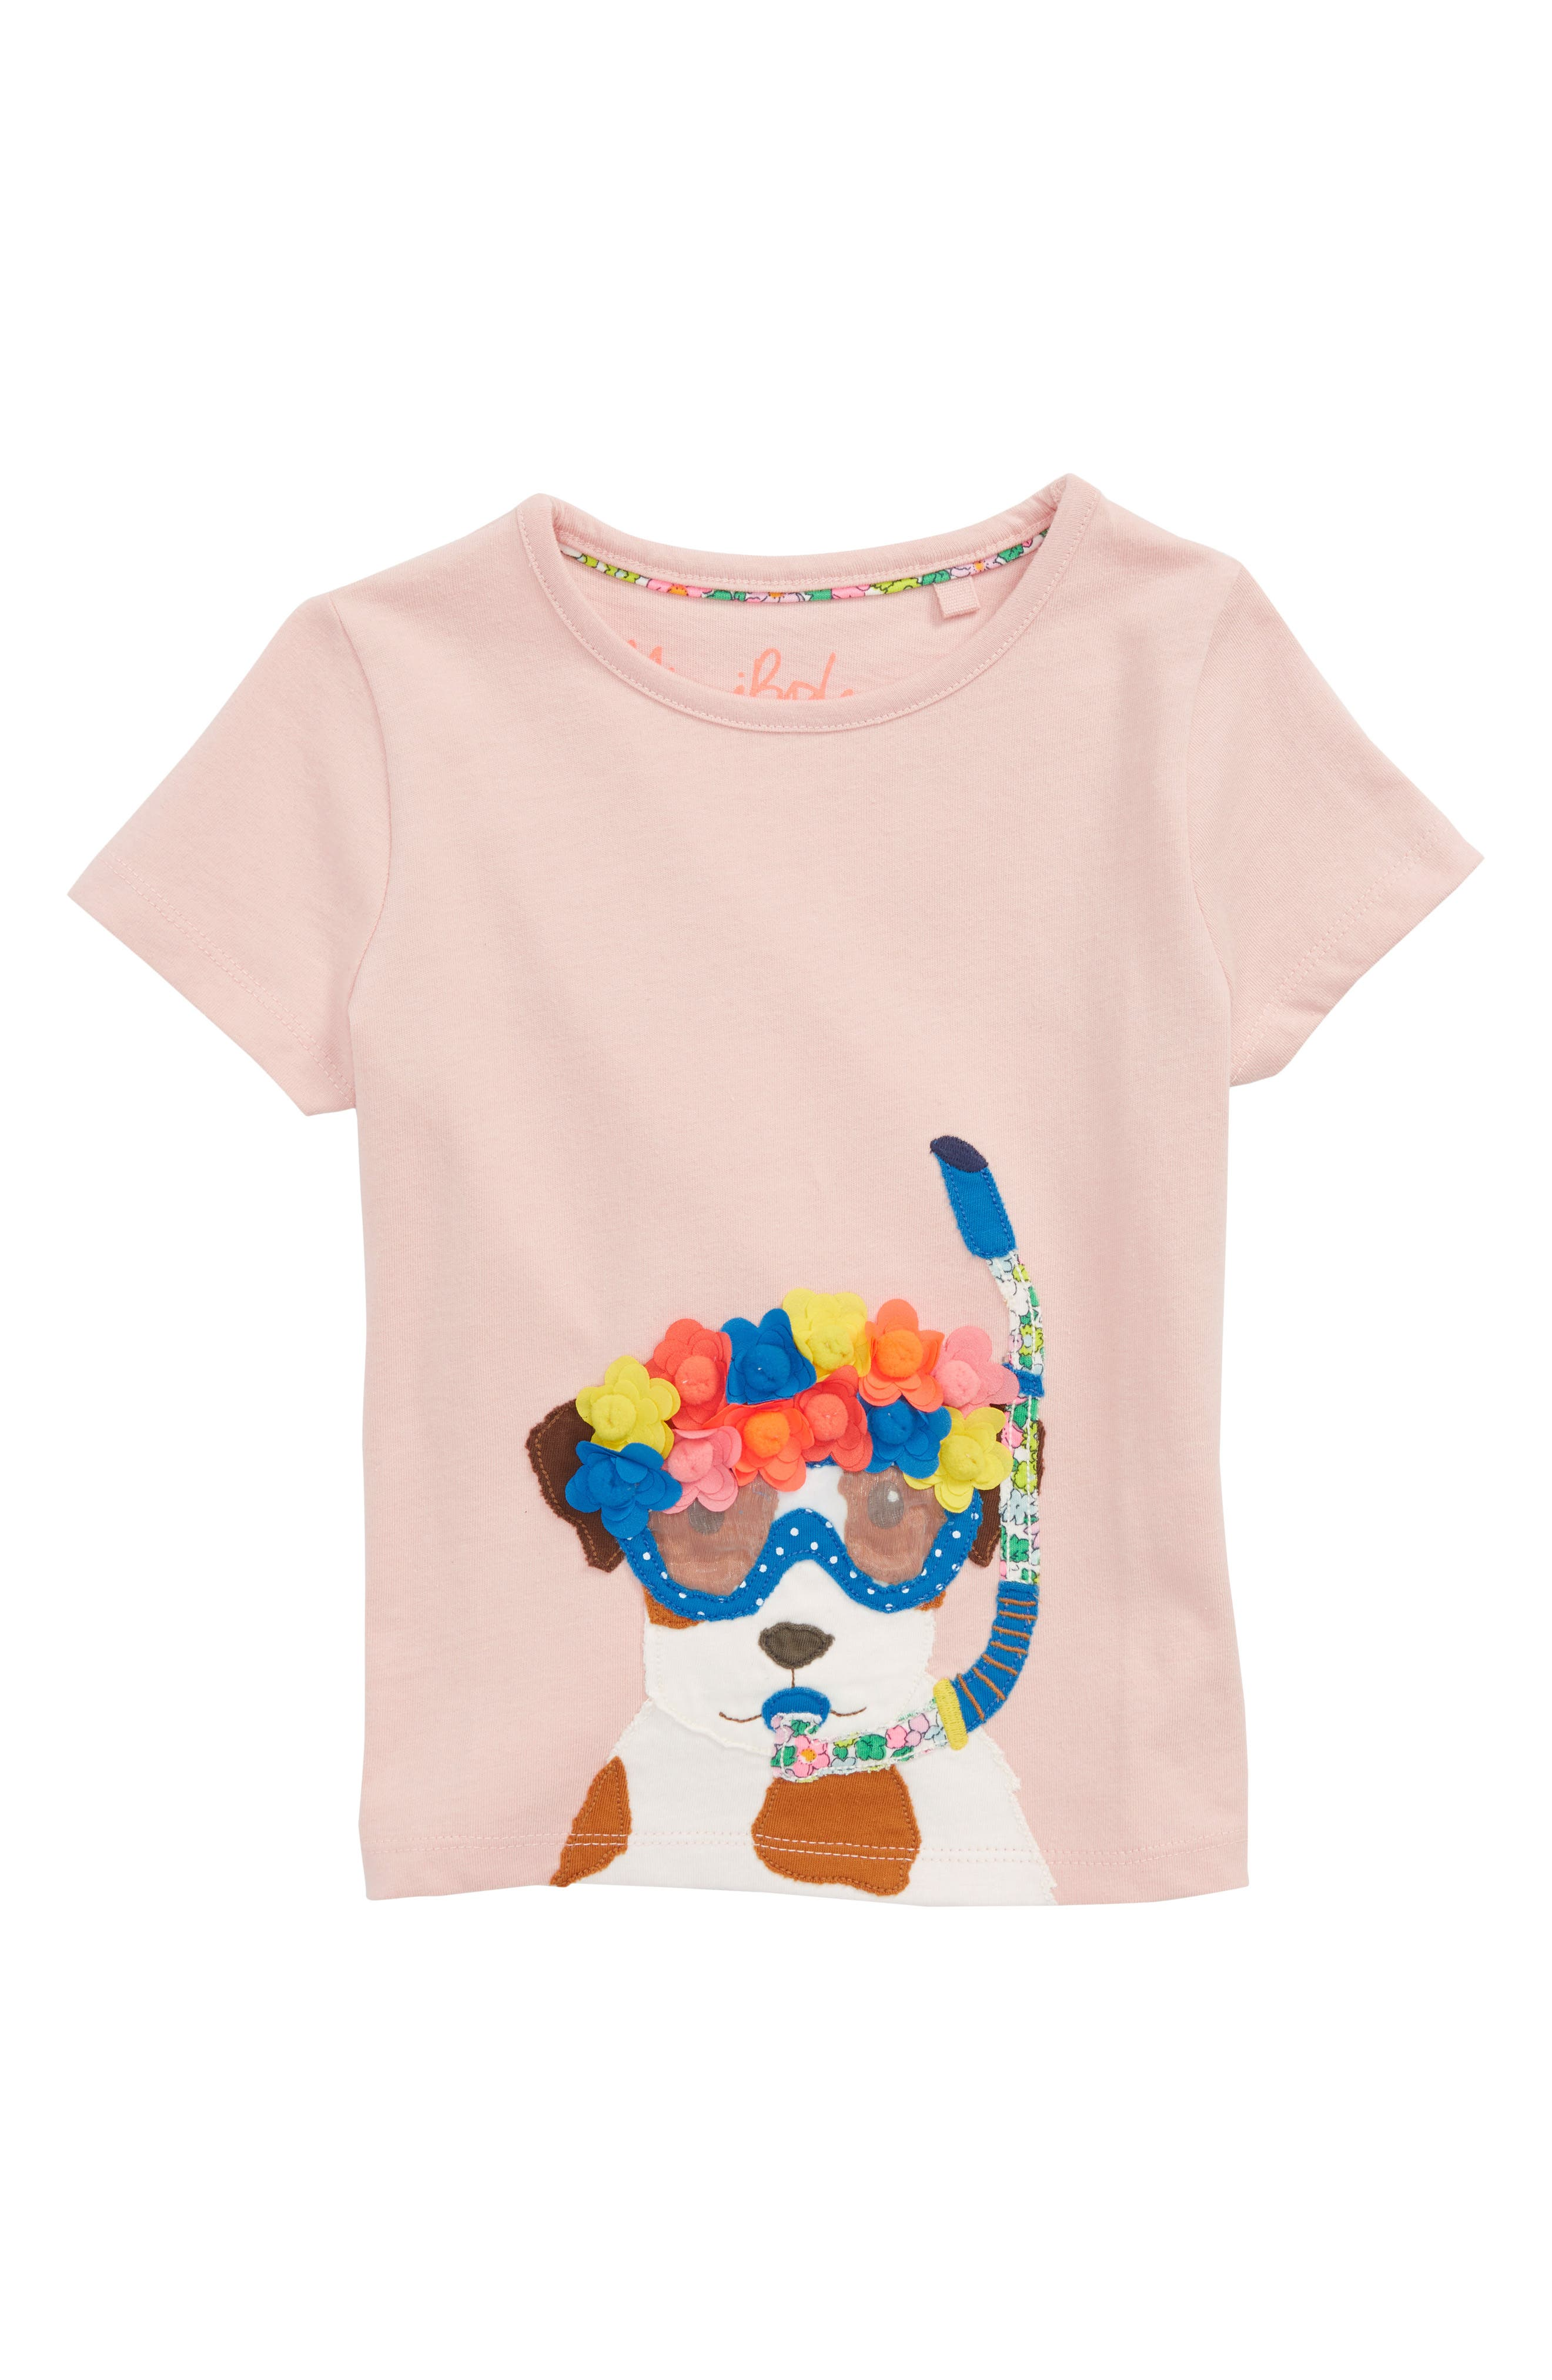 Fun Animal Appliqué Tee,                             Main thumbnail 1, color,                             Provence Dusty Pink Sprout Pnk